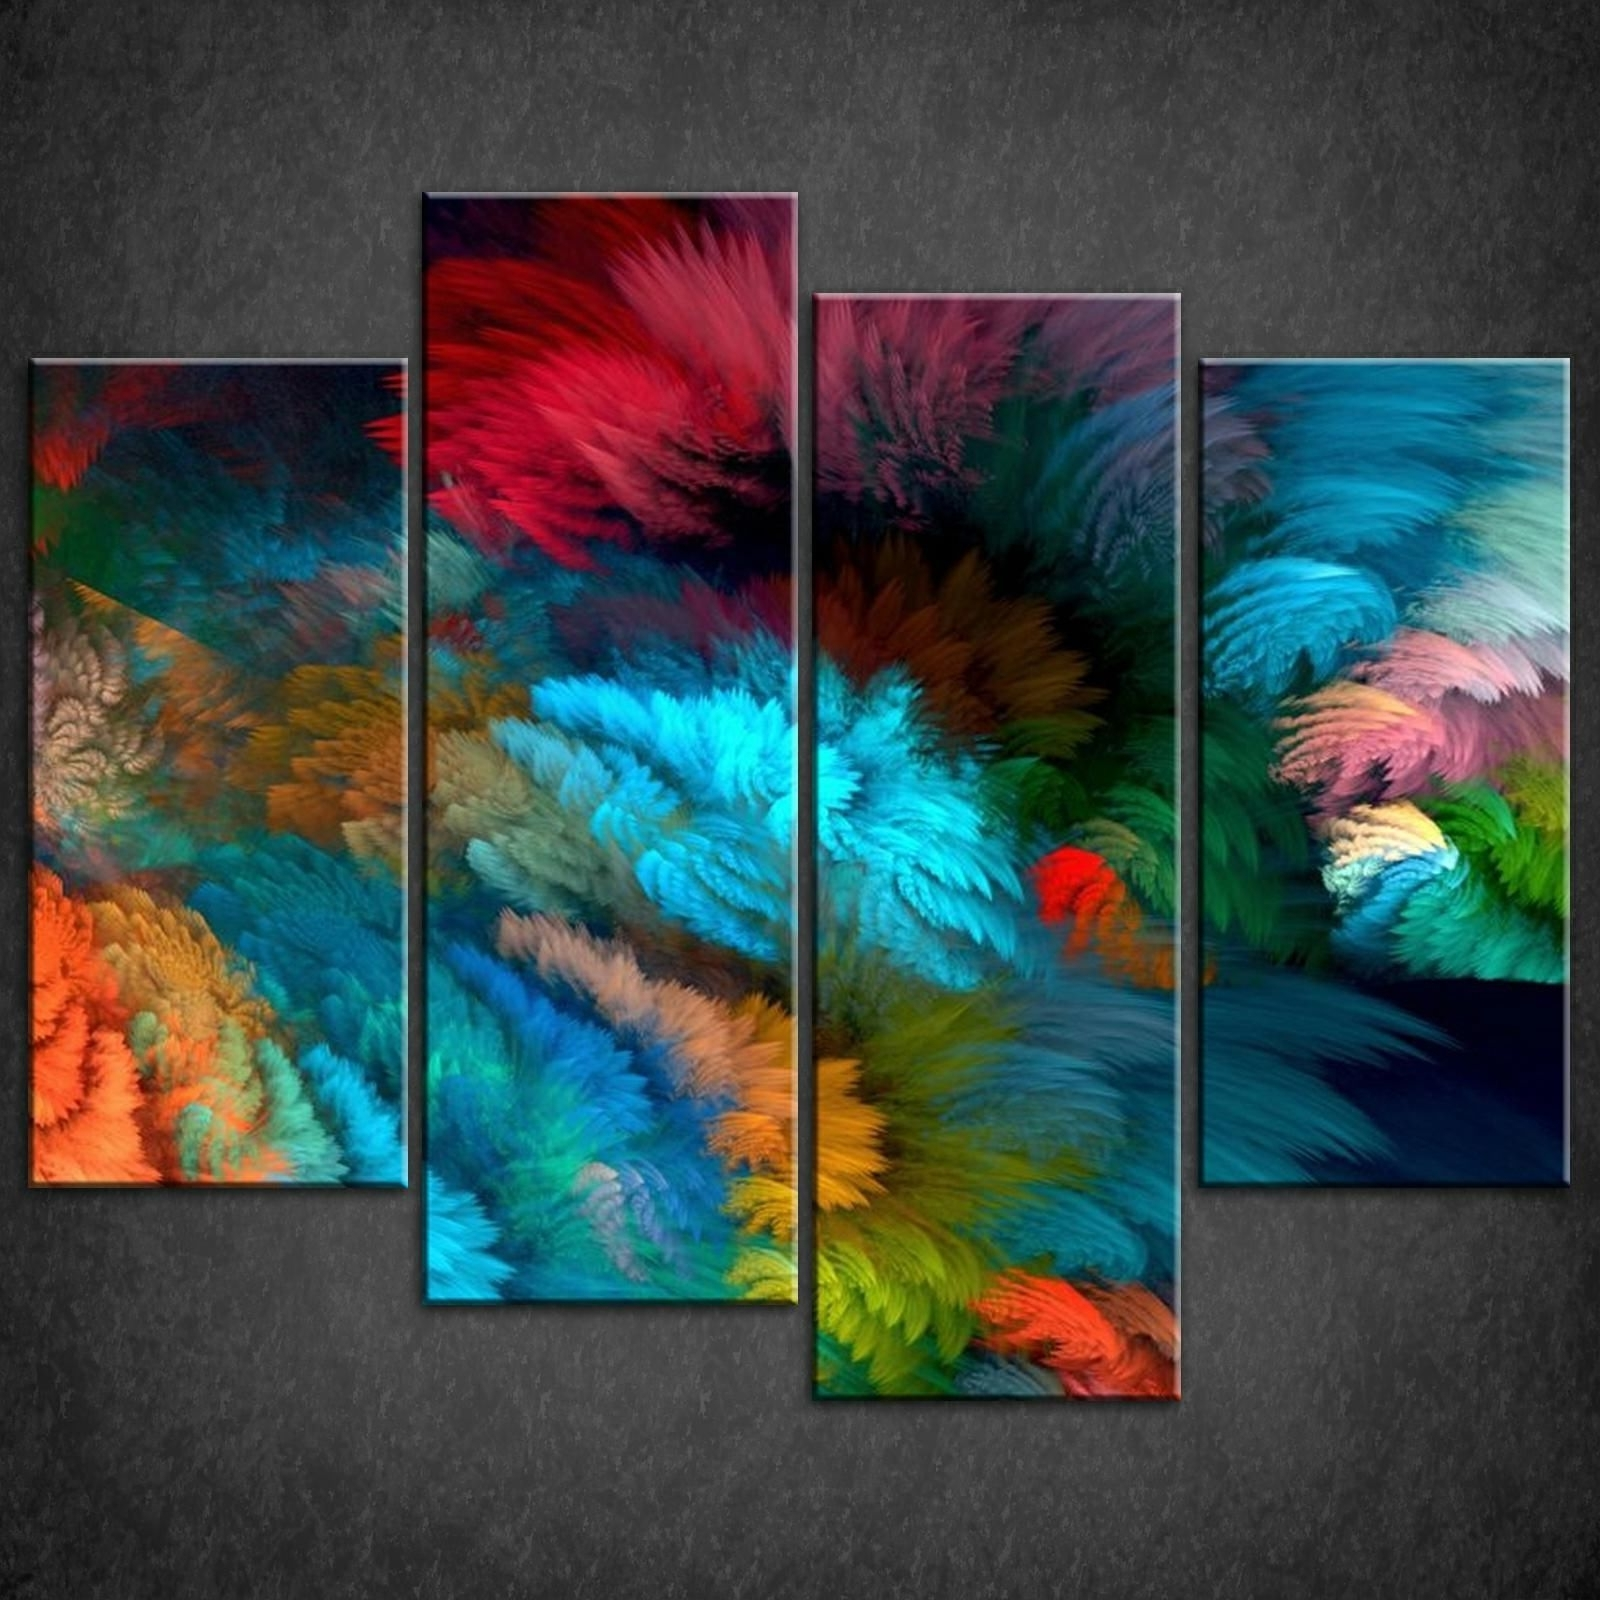 Decor: Large Abstract Colourful Split Canvas Wall Art Pictures Prints Intended For Favorite Large Framed Canvas Wall Art (View 4 of 15)